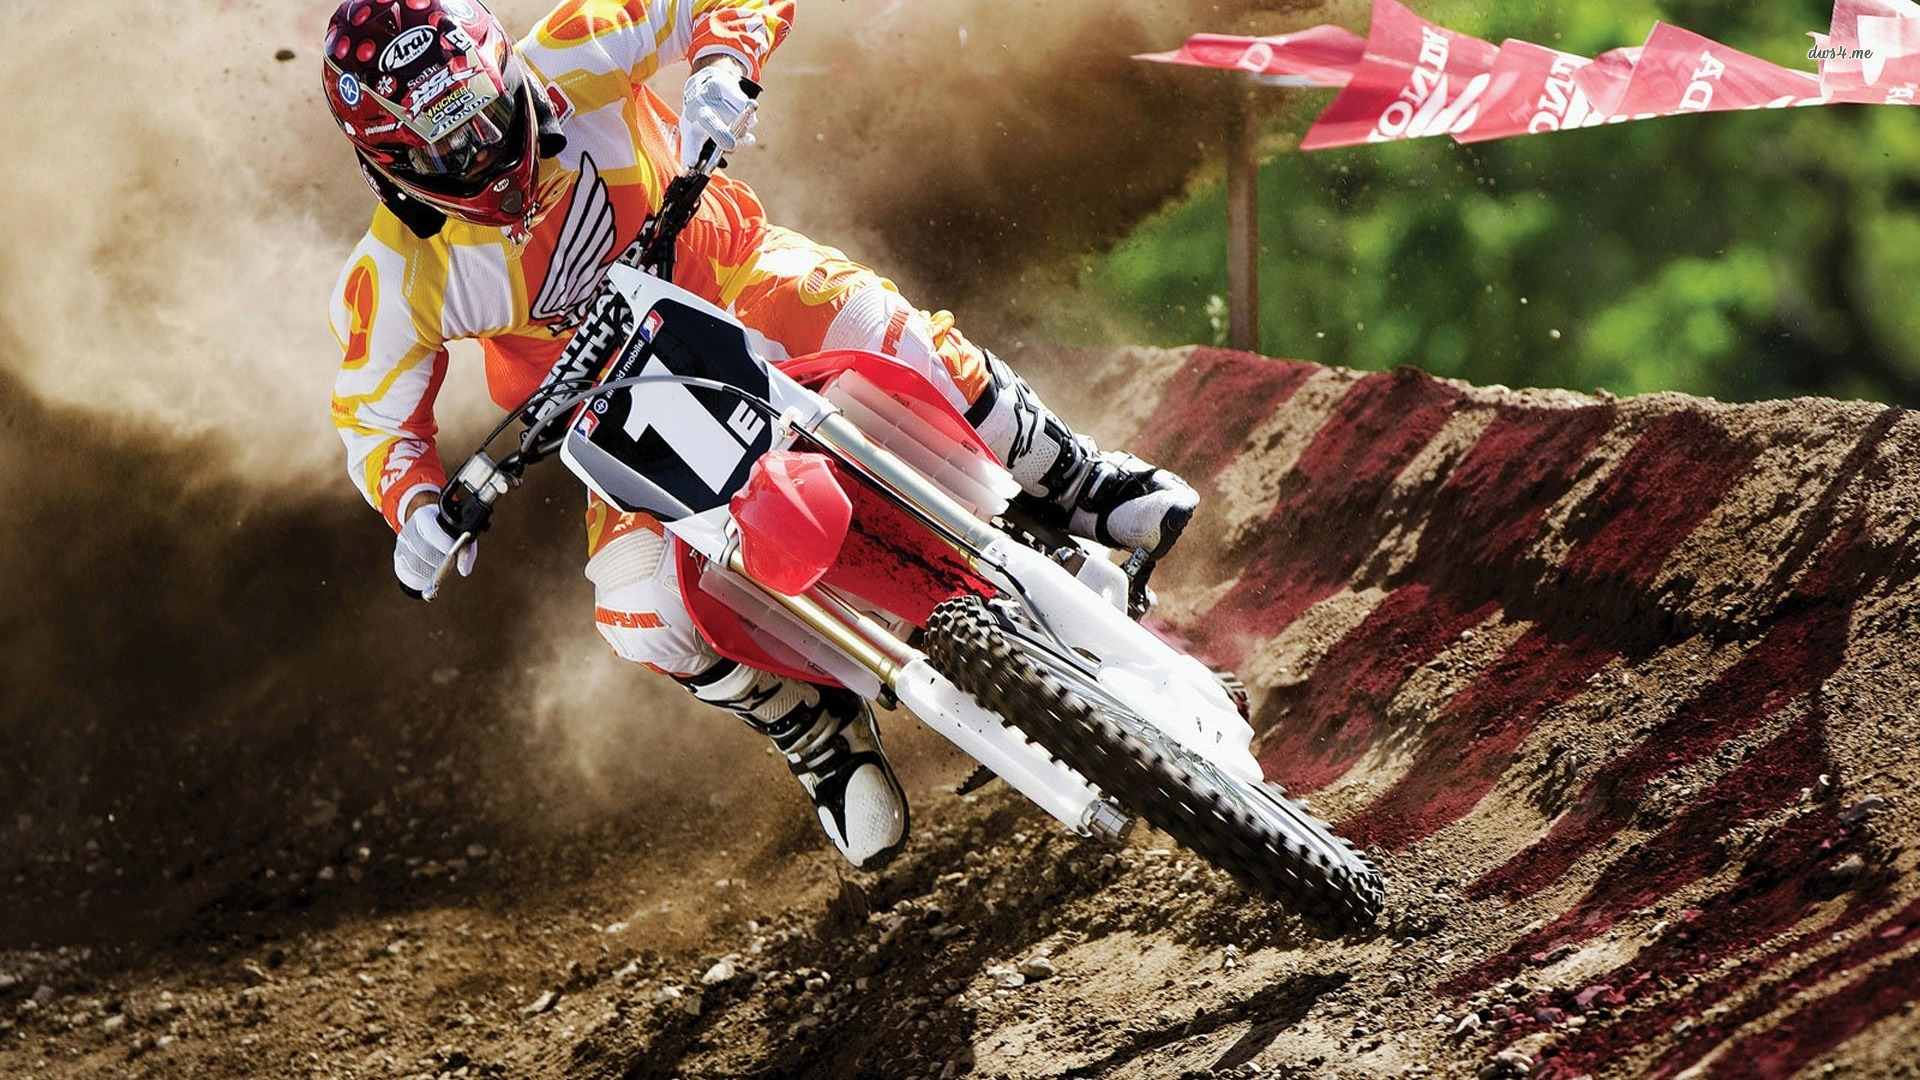 Honda Crf250r Wallpaper